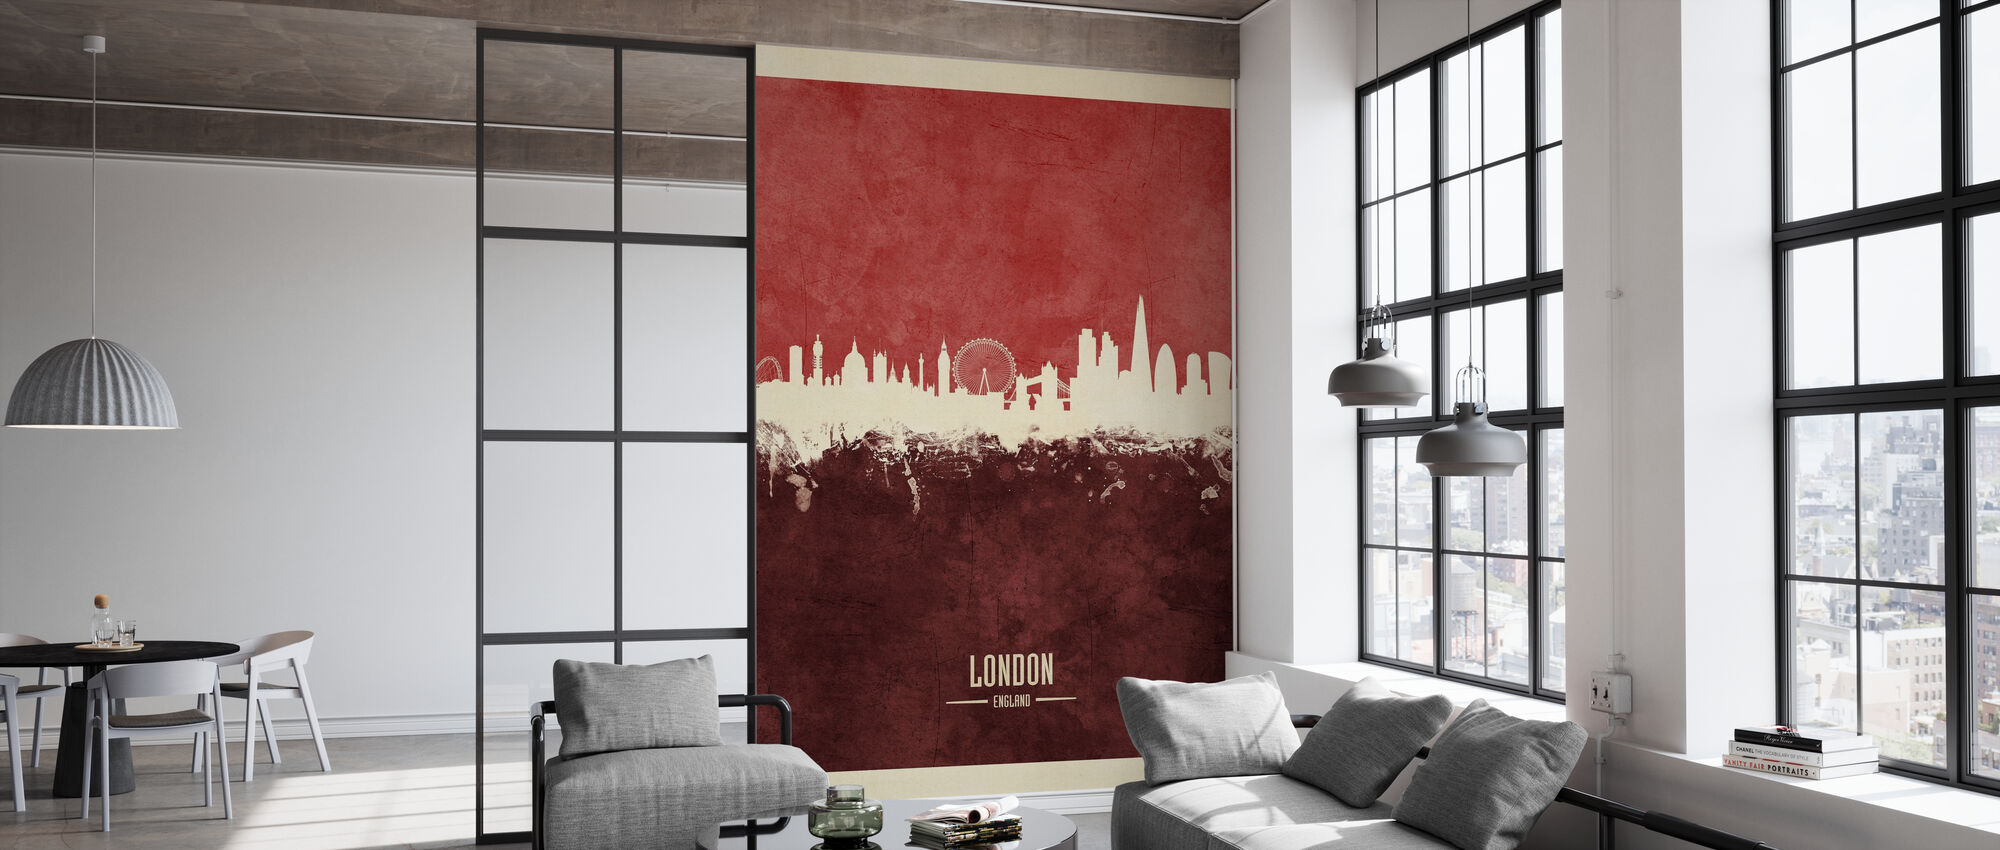 London England Skyline Red - Wallpaper - Office